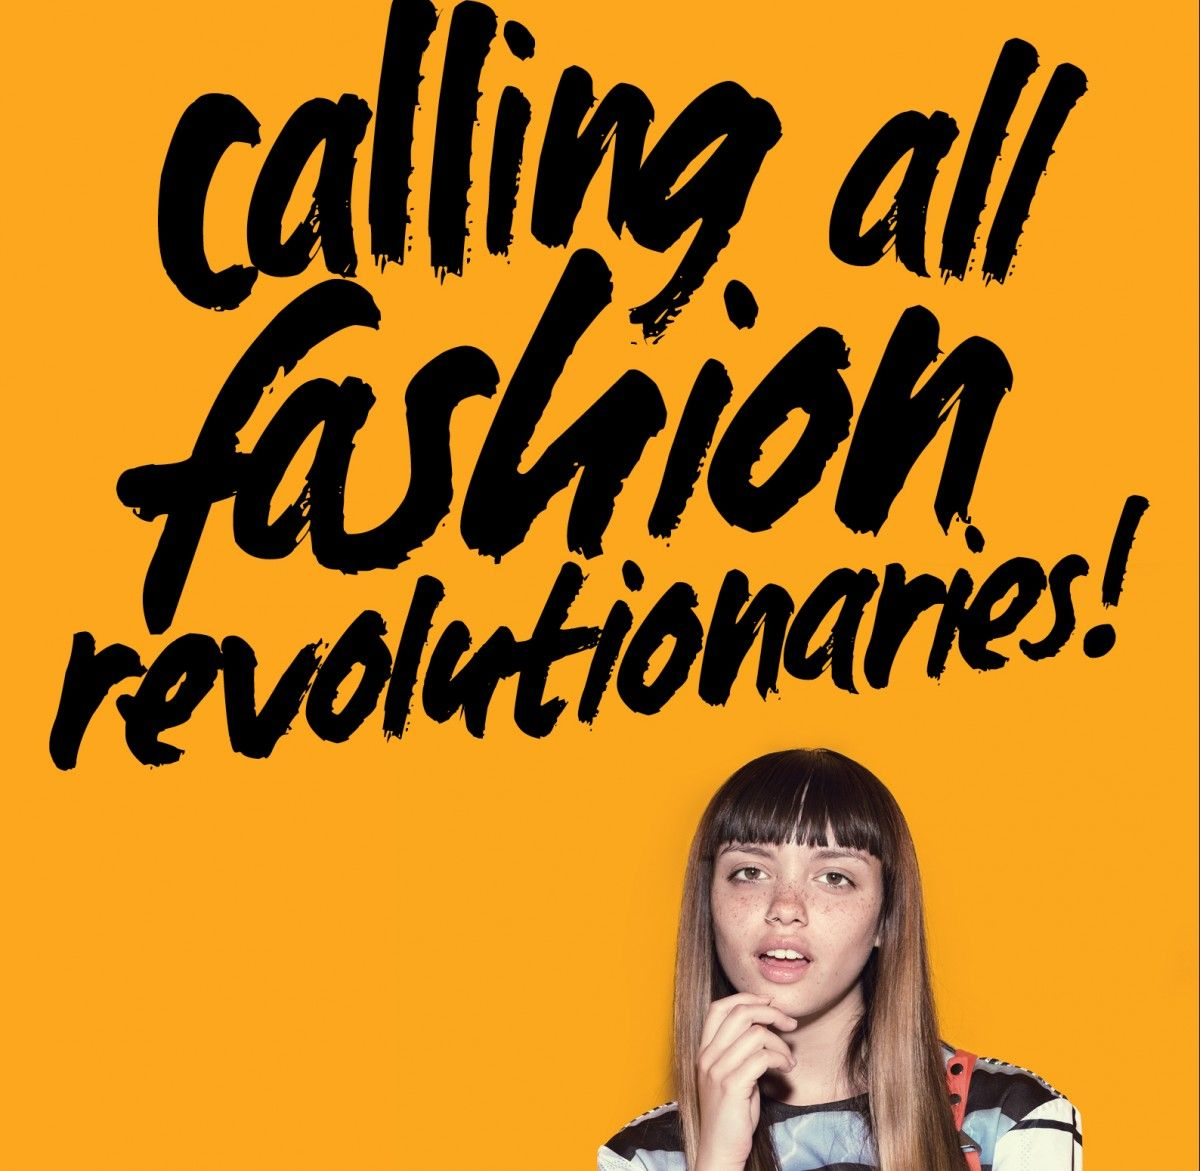 (Fashion Revolution's conscious consumer campaign engages millennials and young consumers of fashion. Credit: Fashion Revolution)